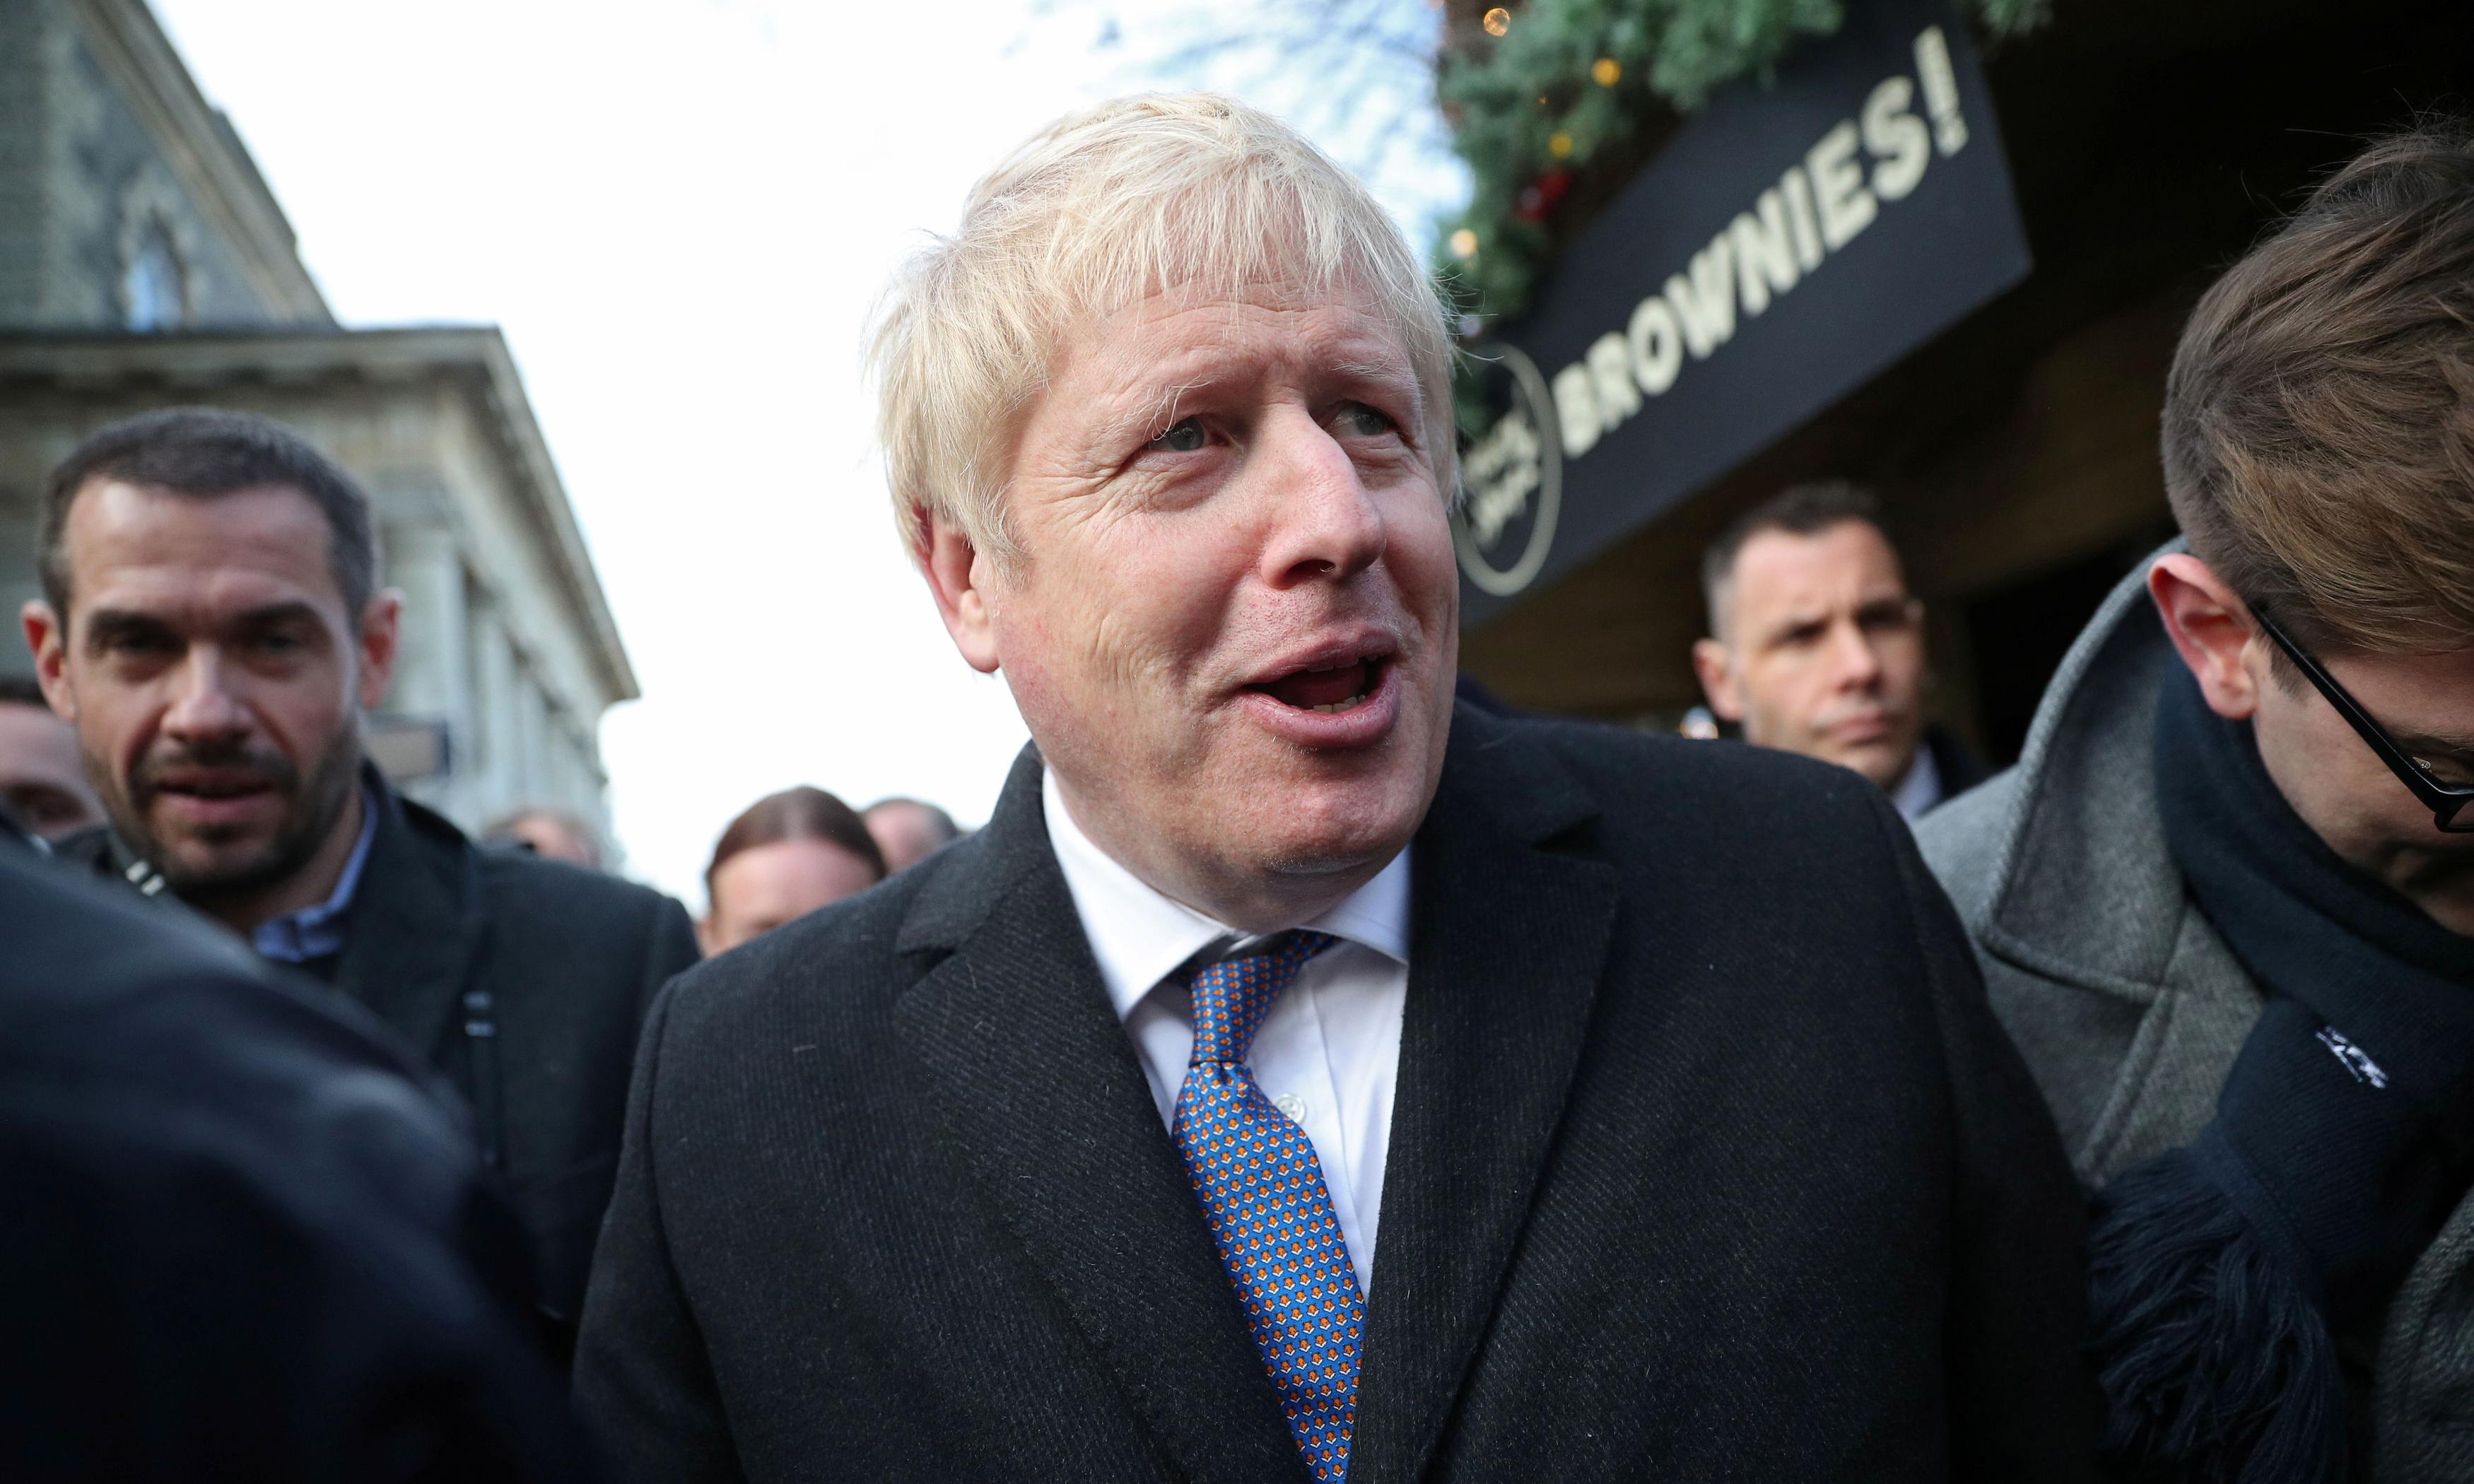 The Guardian view on Boris Johnson's poverty plan: spread it widely?